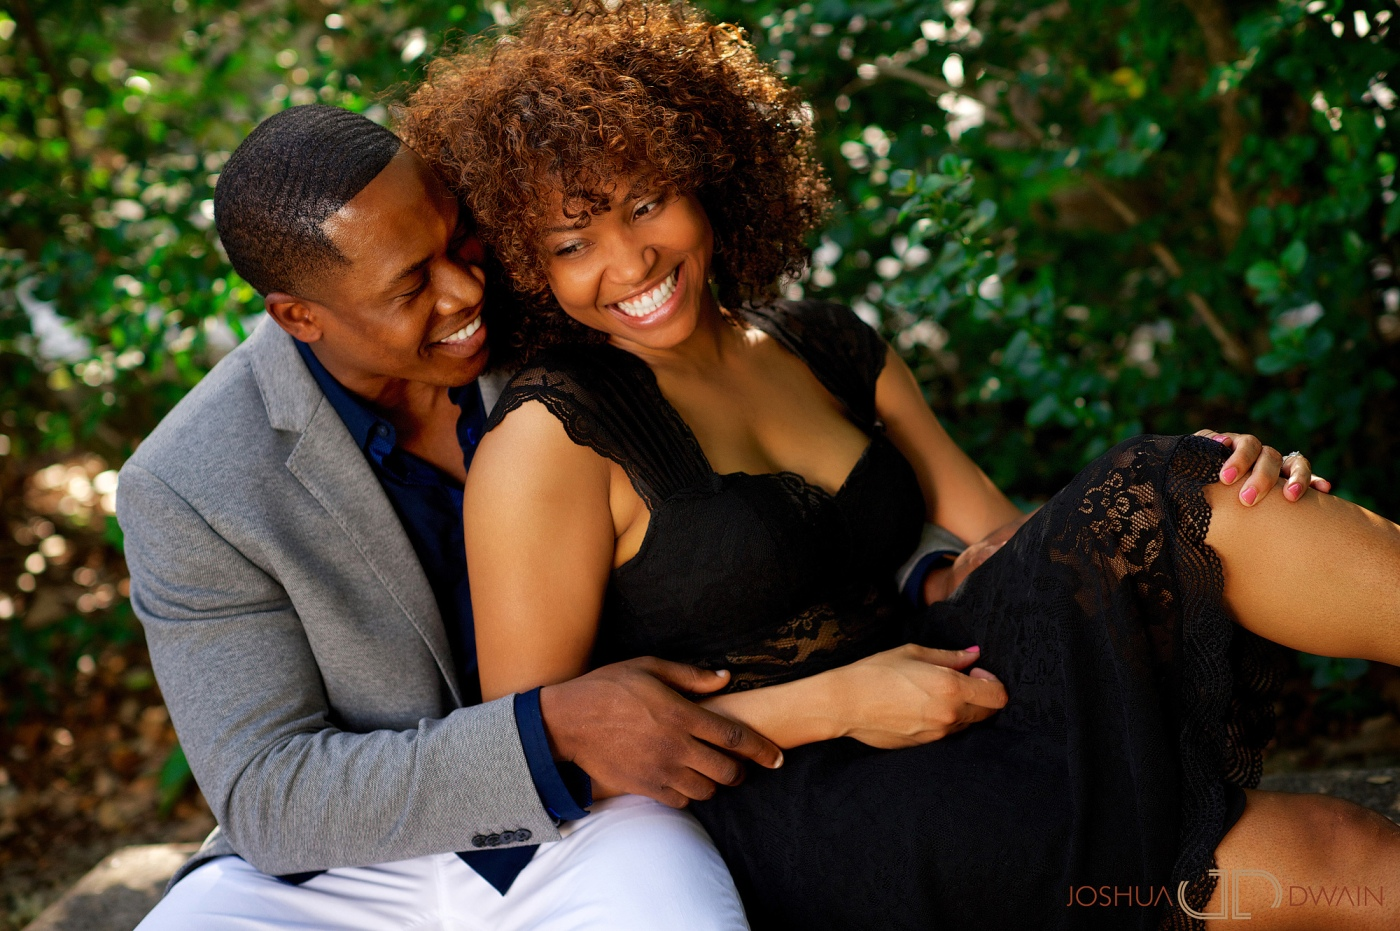 Do You Want An Amazing Relationship? Then Check Out These 102 Tips